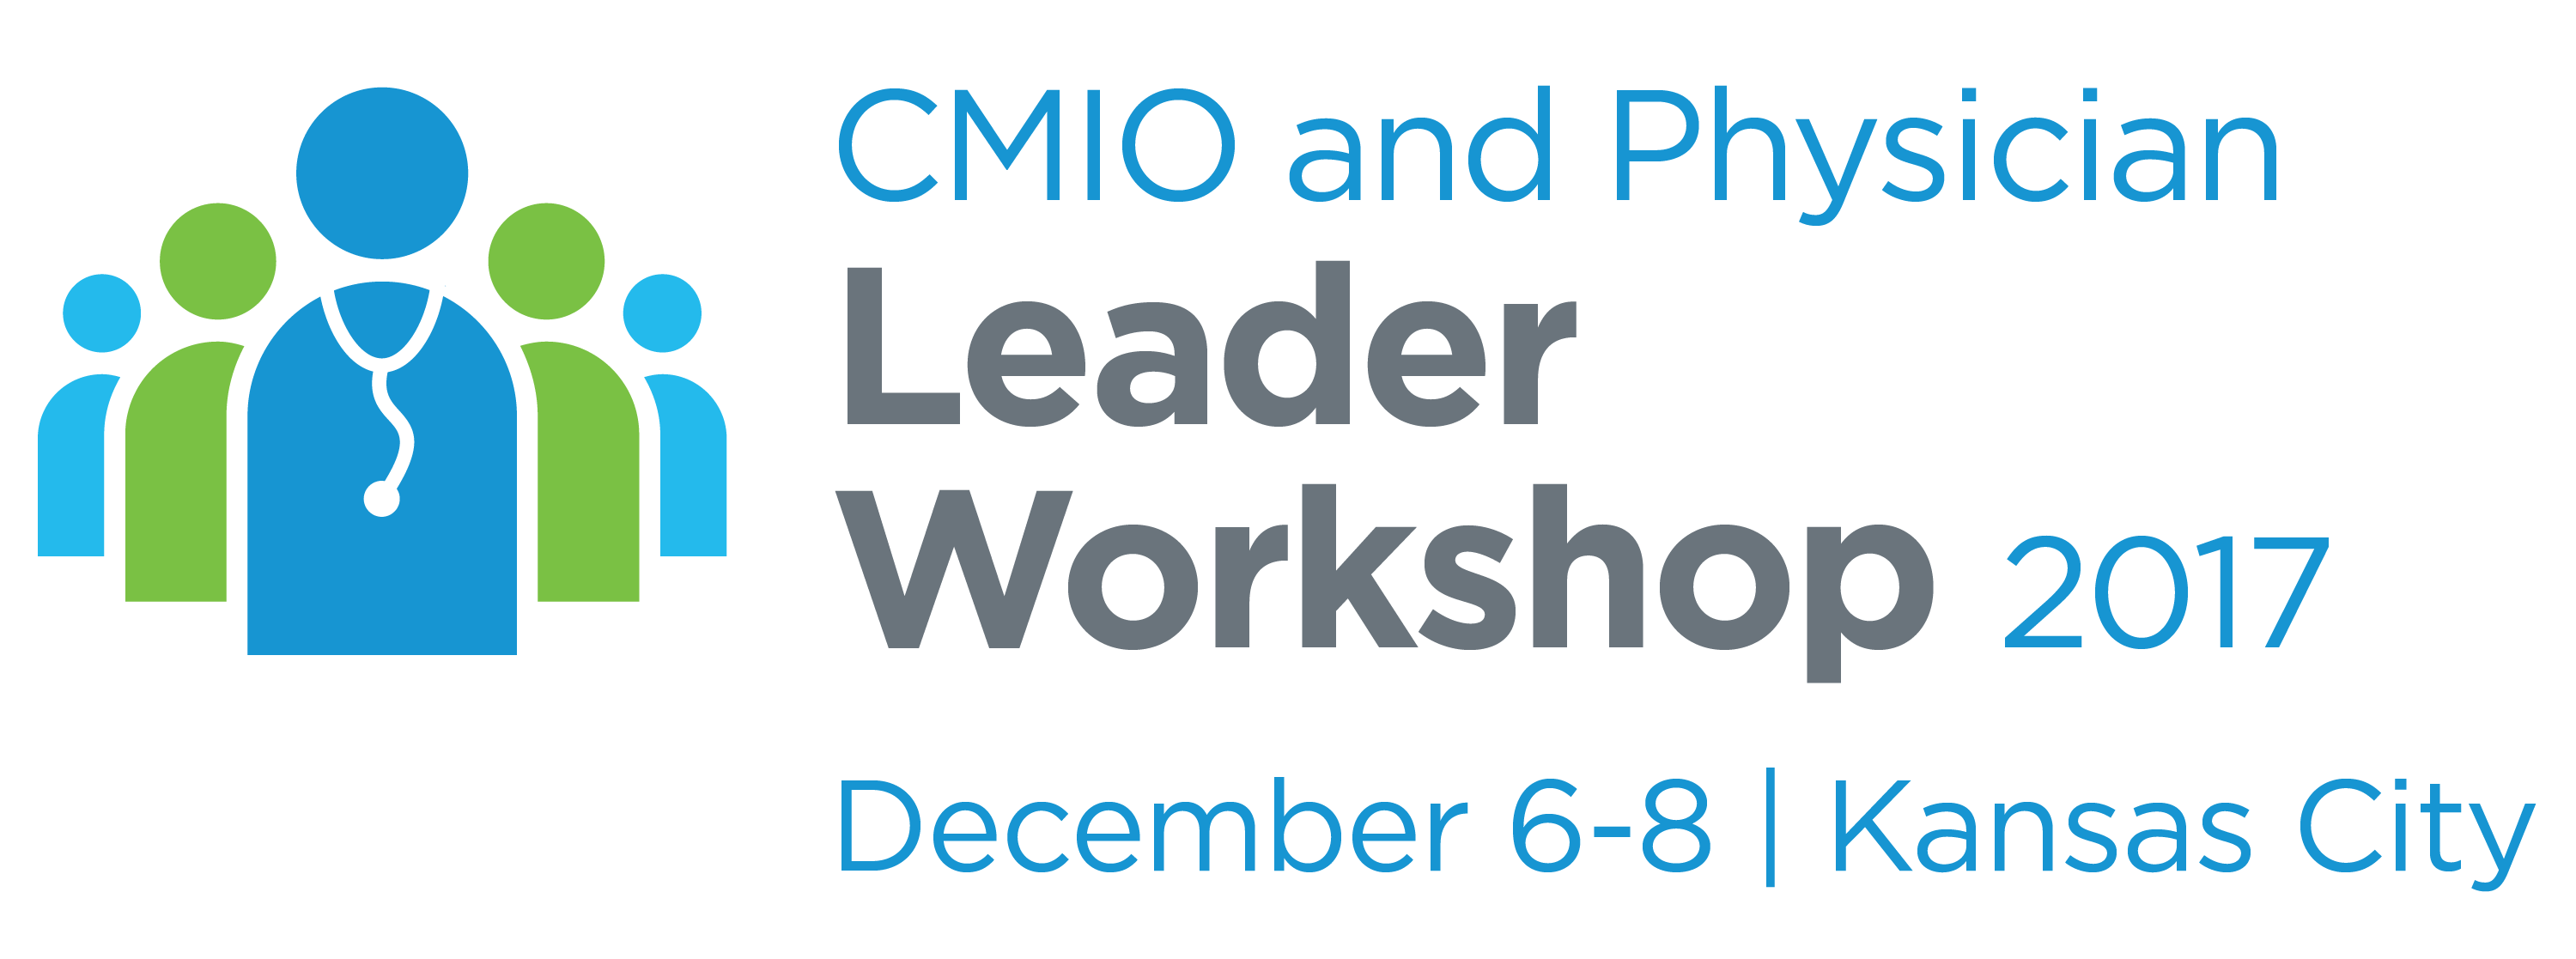 CMIO and Physician Leader Workshop 2017 - Winter